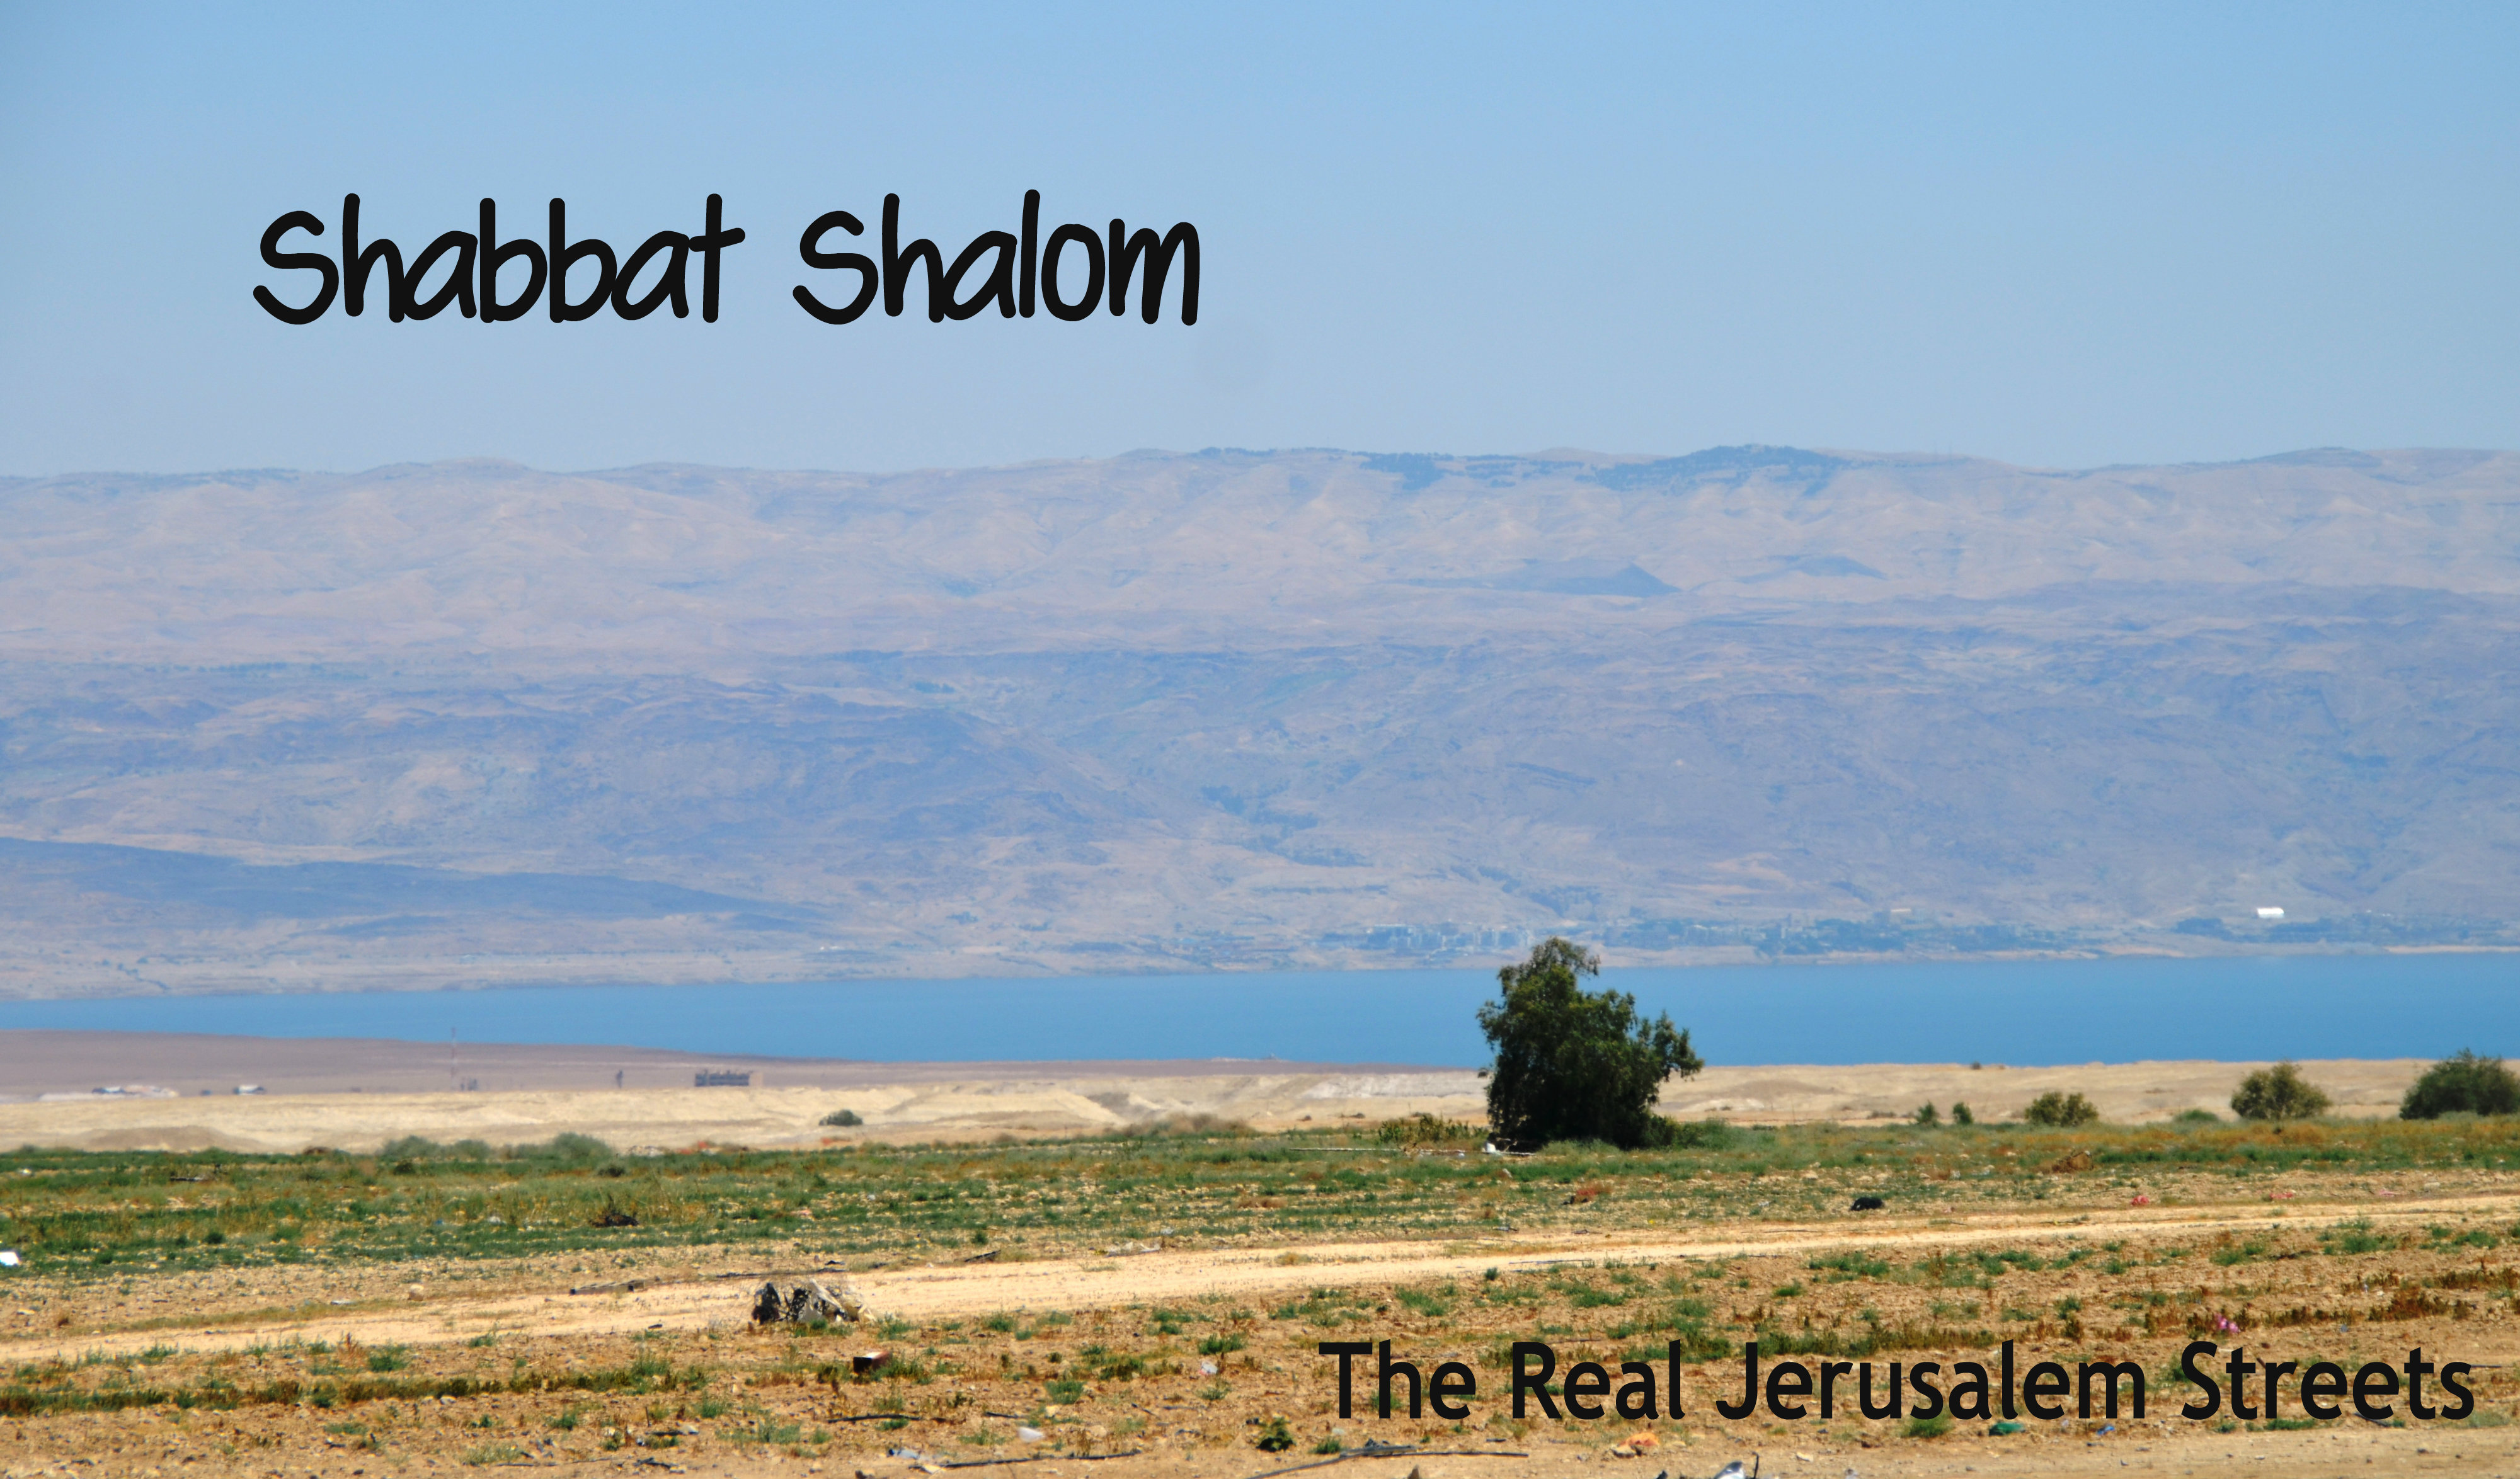 image for Shabbat shalom, Dead Sea picture, photo Israel